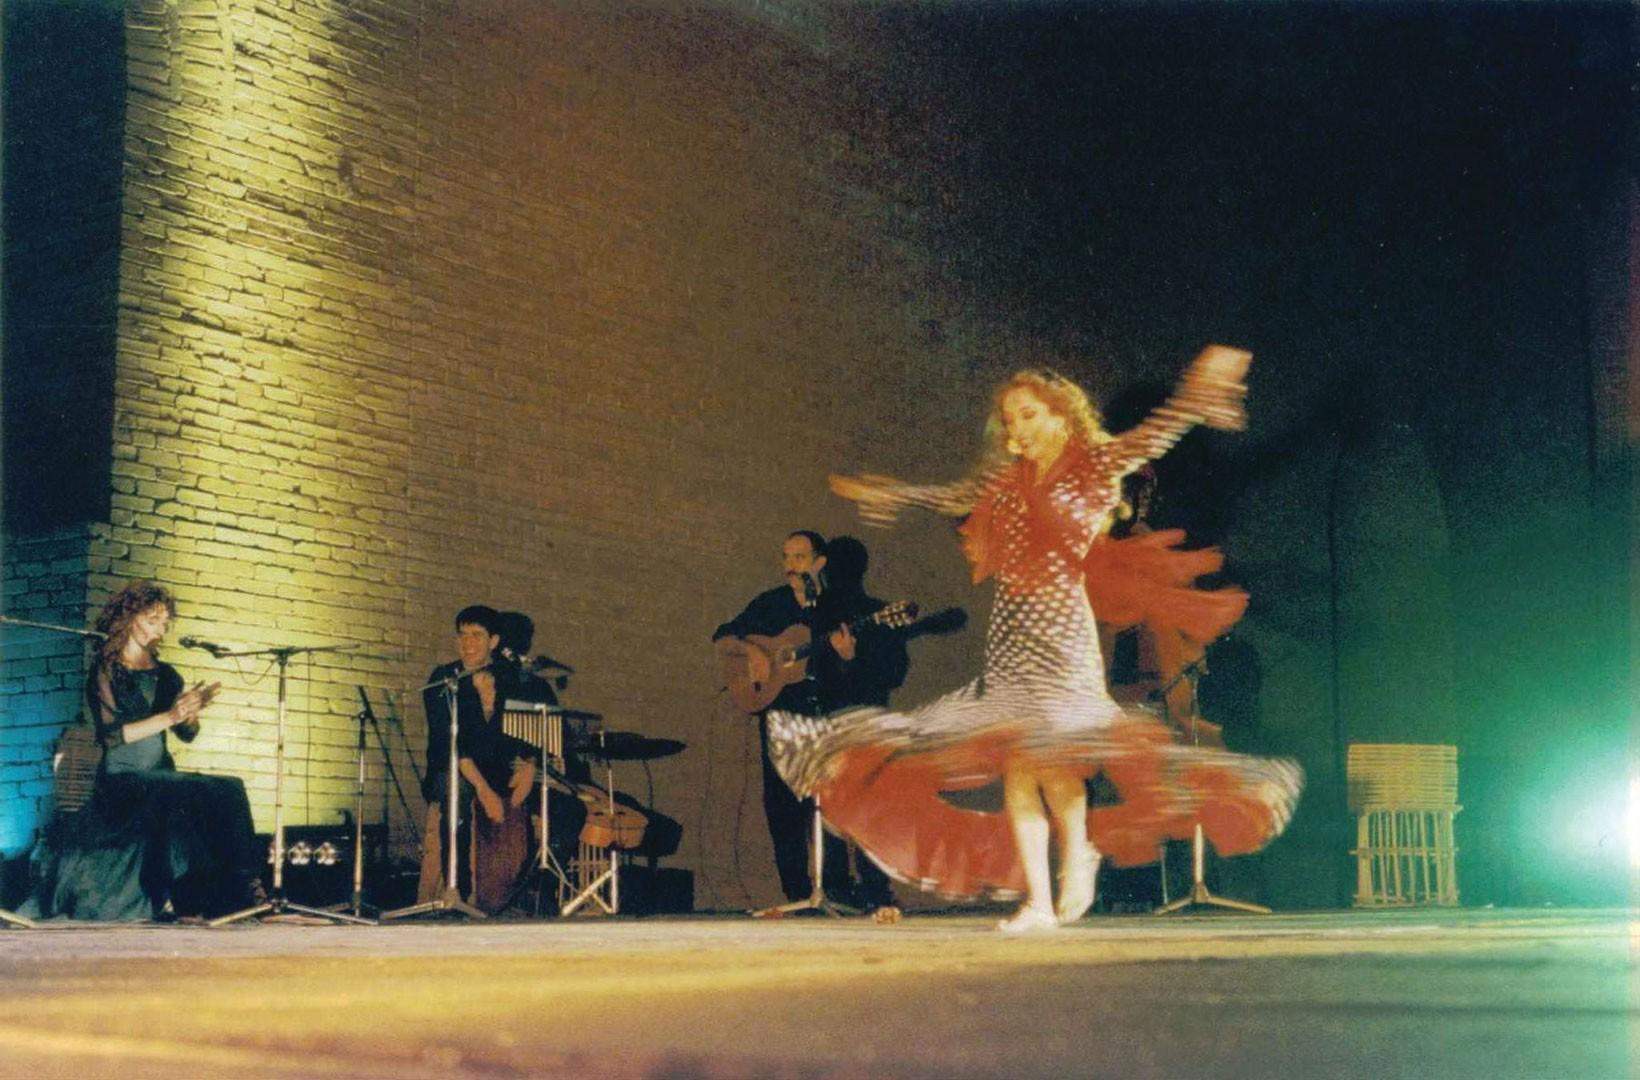 Performing Barefoot Flamenco and Bellydance Fusion